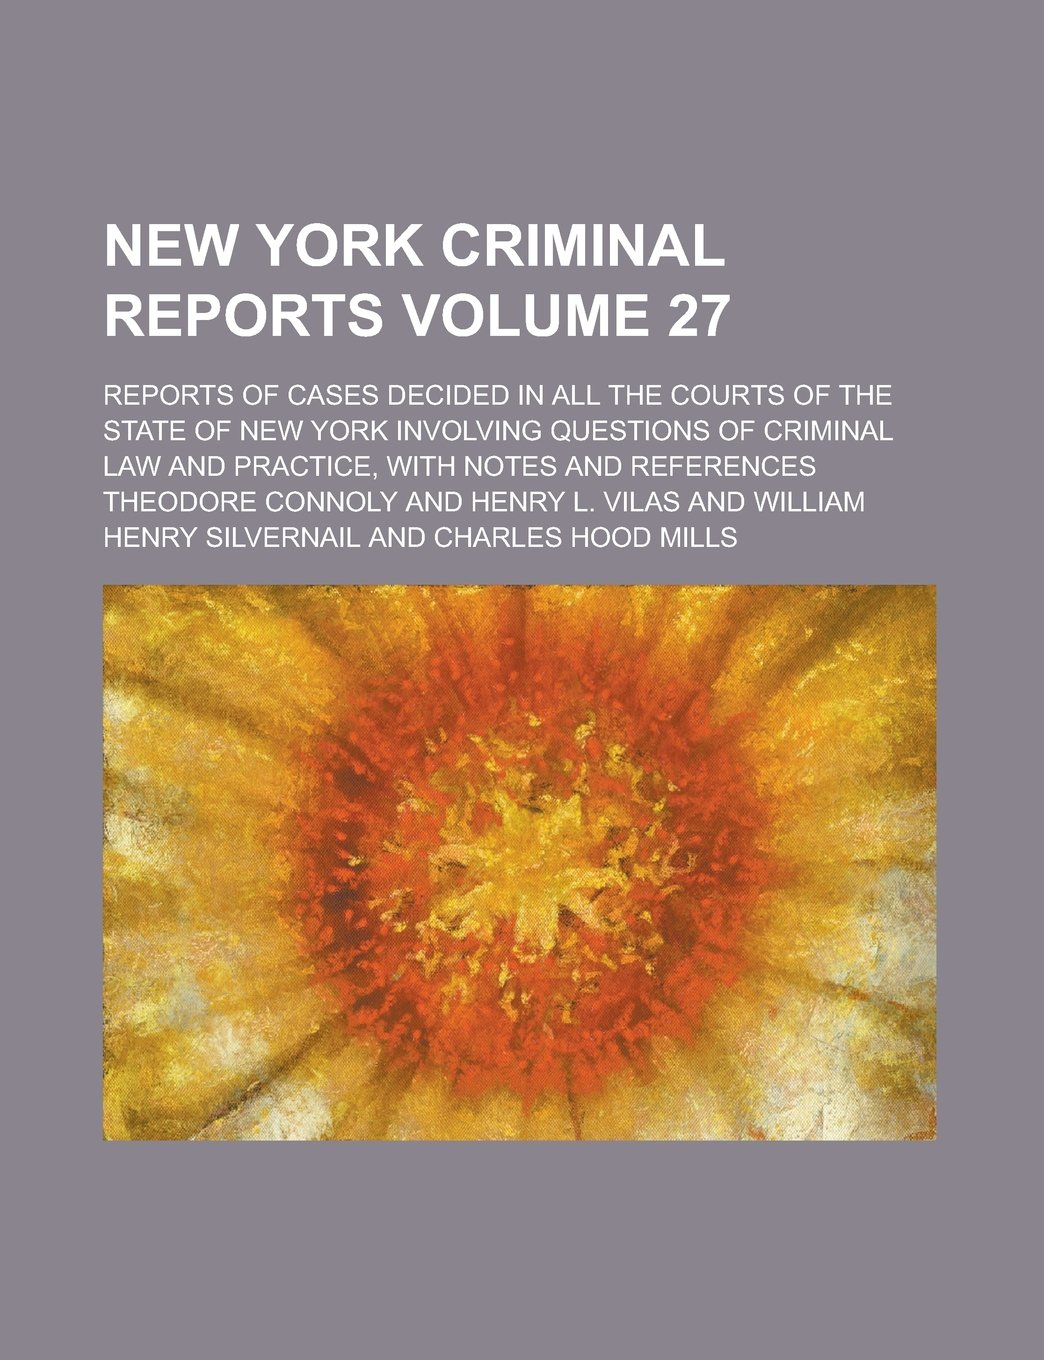 Download New York Criminal Reports; Reports of Cases Decided in All the Courts of the State of New York Involving Questions of Criminal Law and Practice, with Notes and References Volume 27 pdf